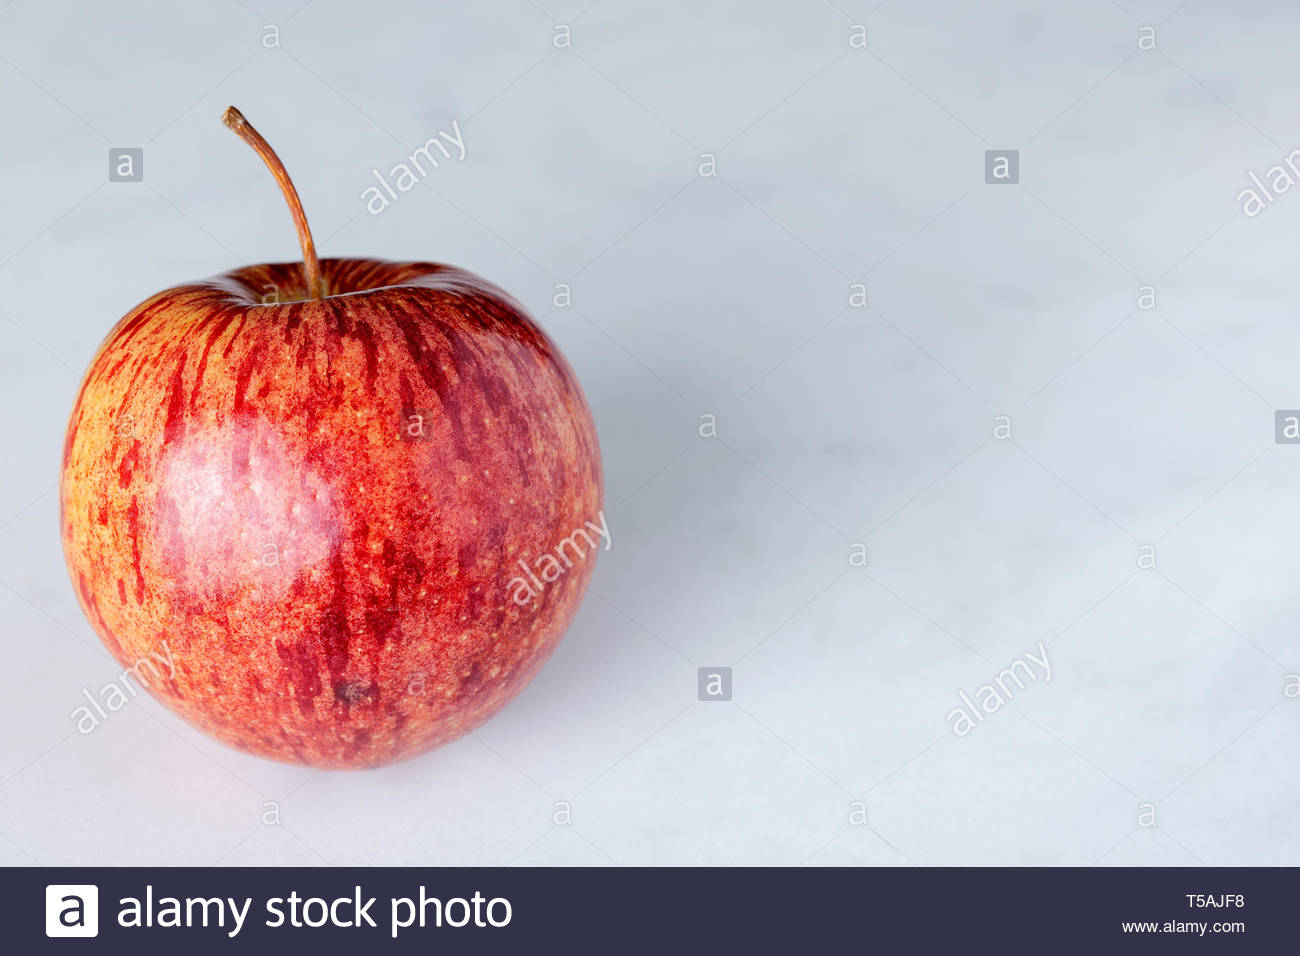 Apple Close Up Shot Of Apple Skin Showing Pattern And Texture With Stem And Copy Text Space To Right On Marble Background Stock Photo Alamy